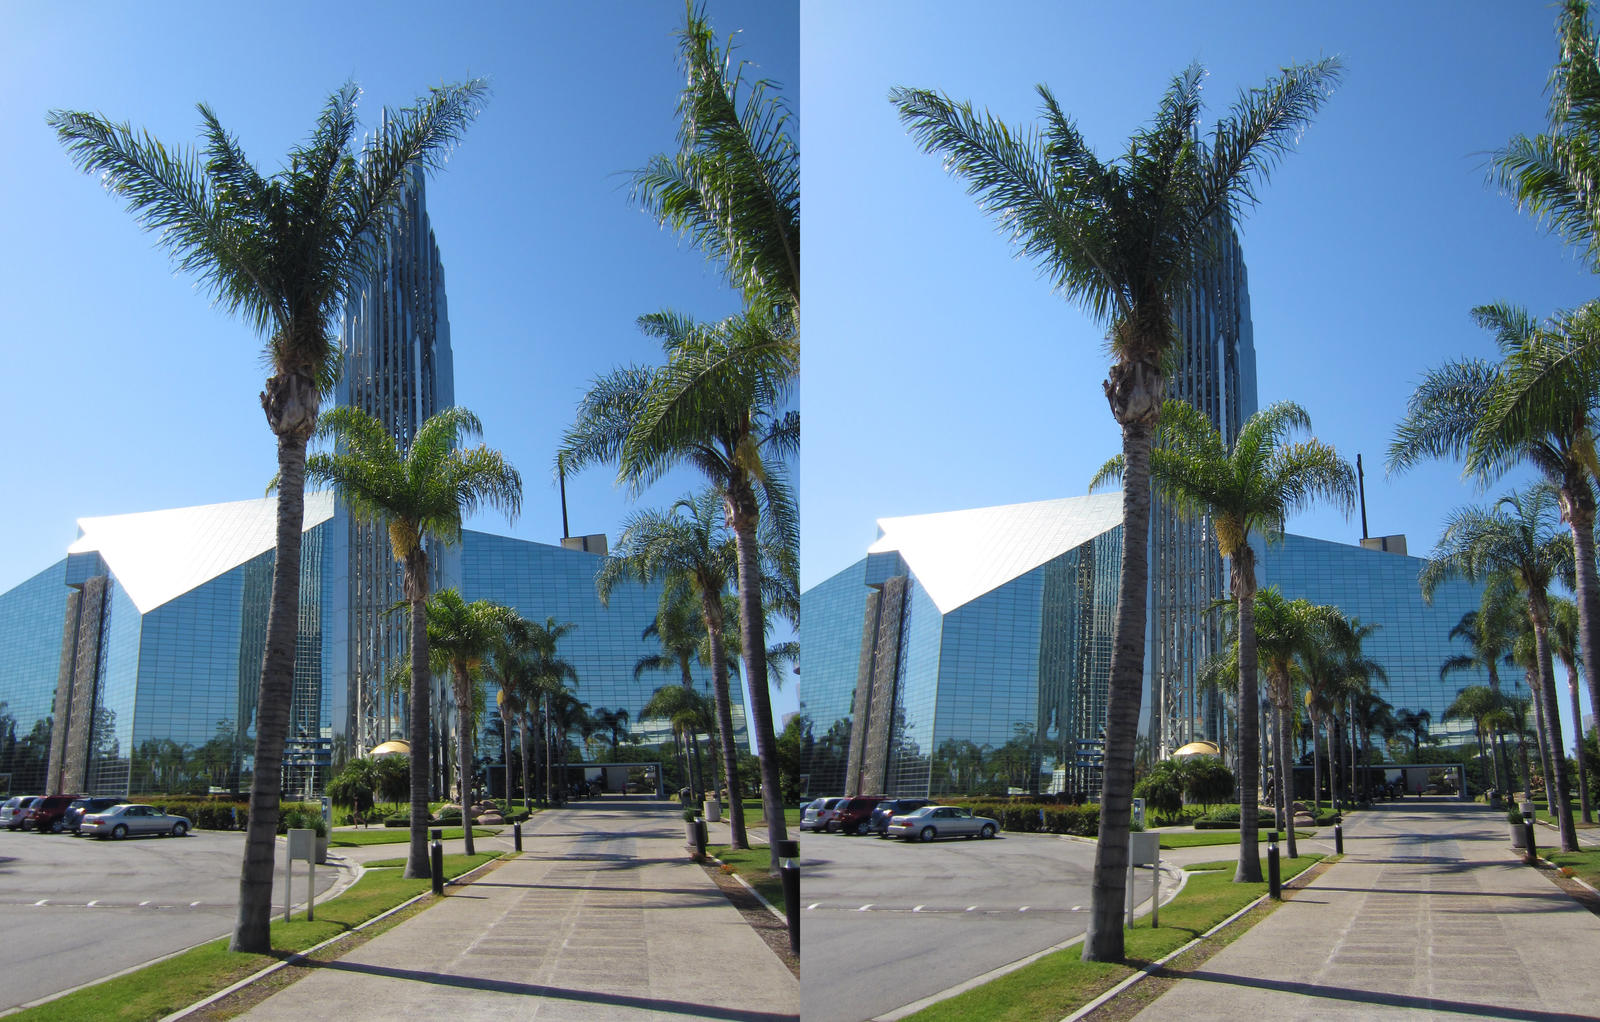 Stereograph - Crystal Cathedral Path by alanbecker